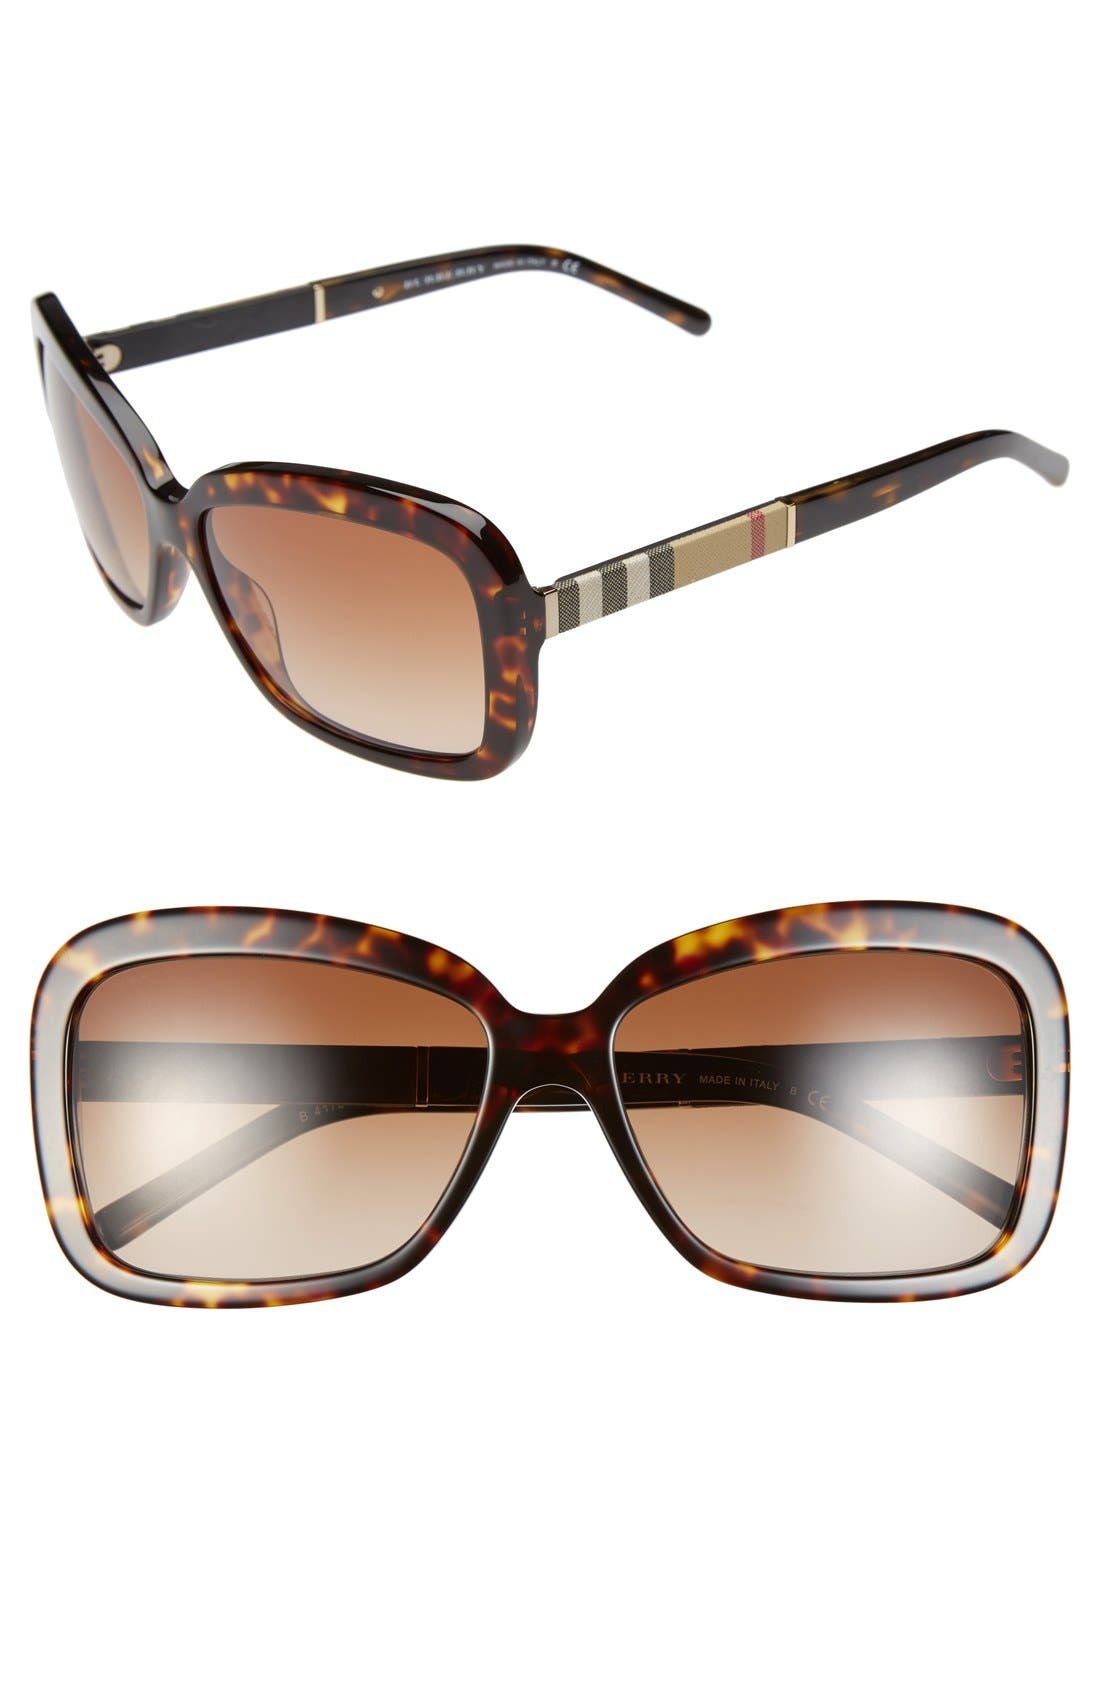 Burberry 58mm Retro Sunglasses